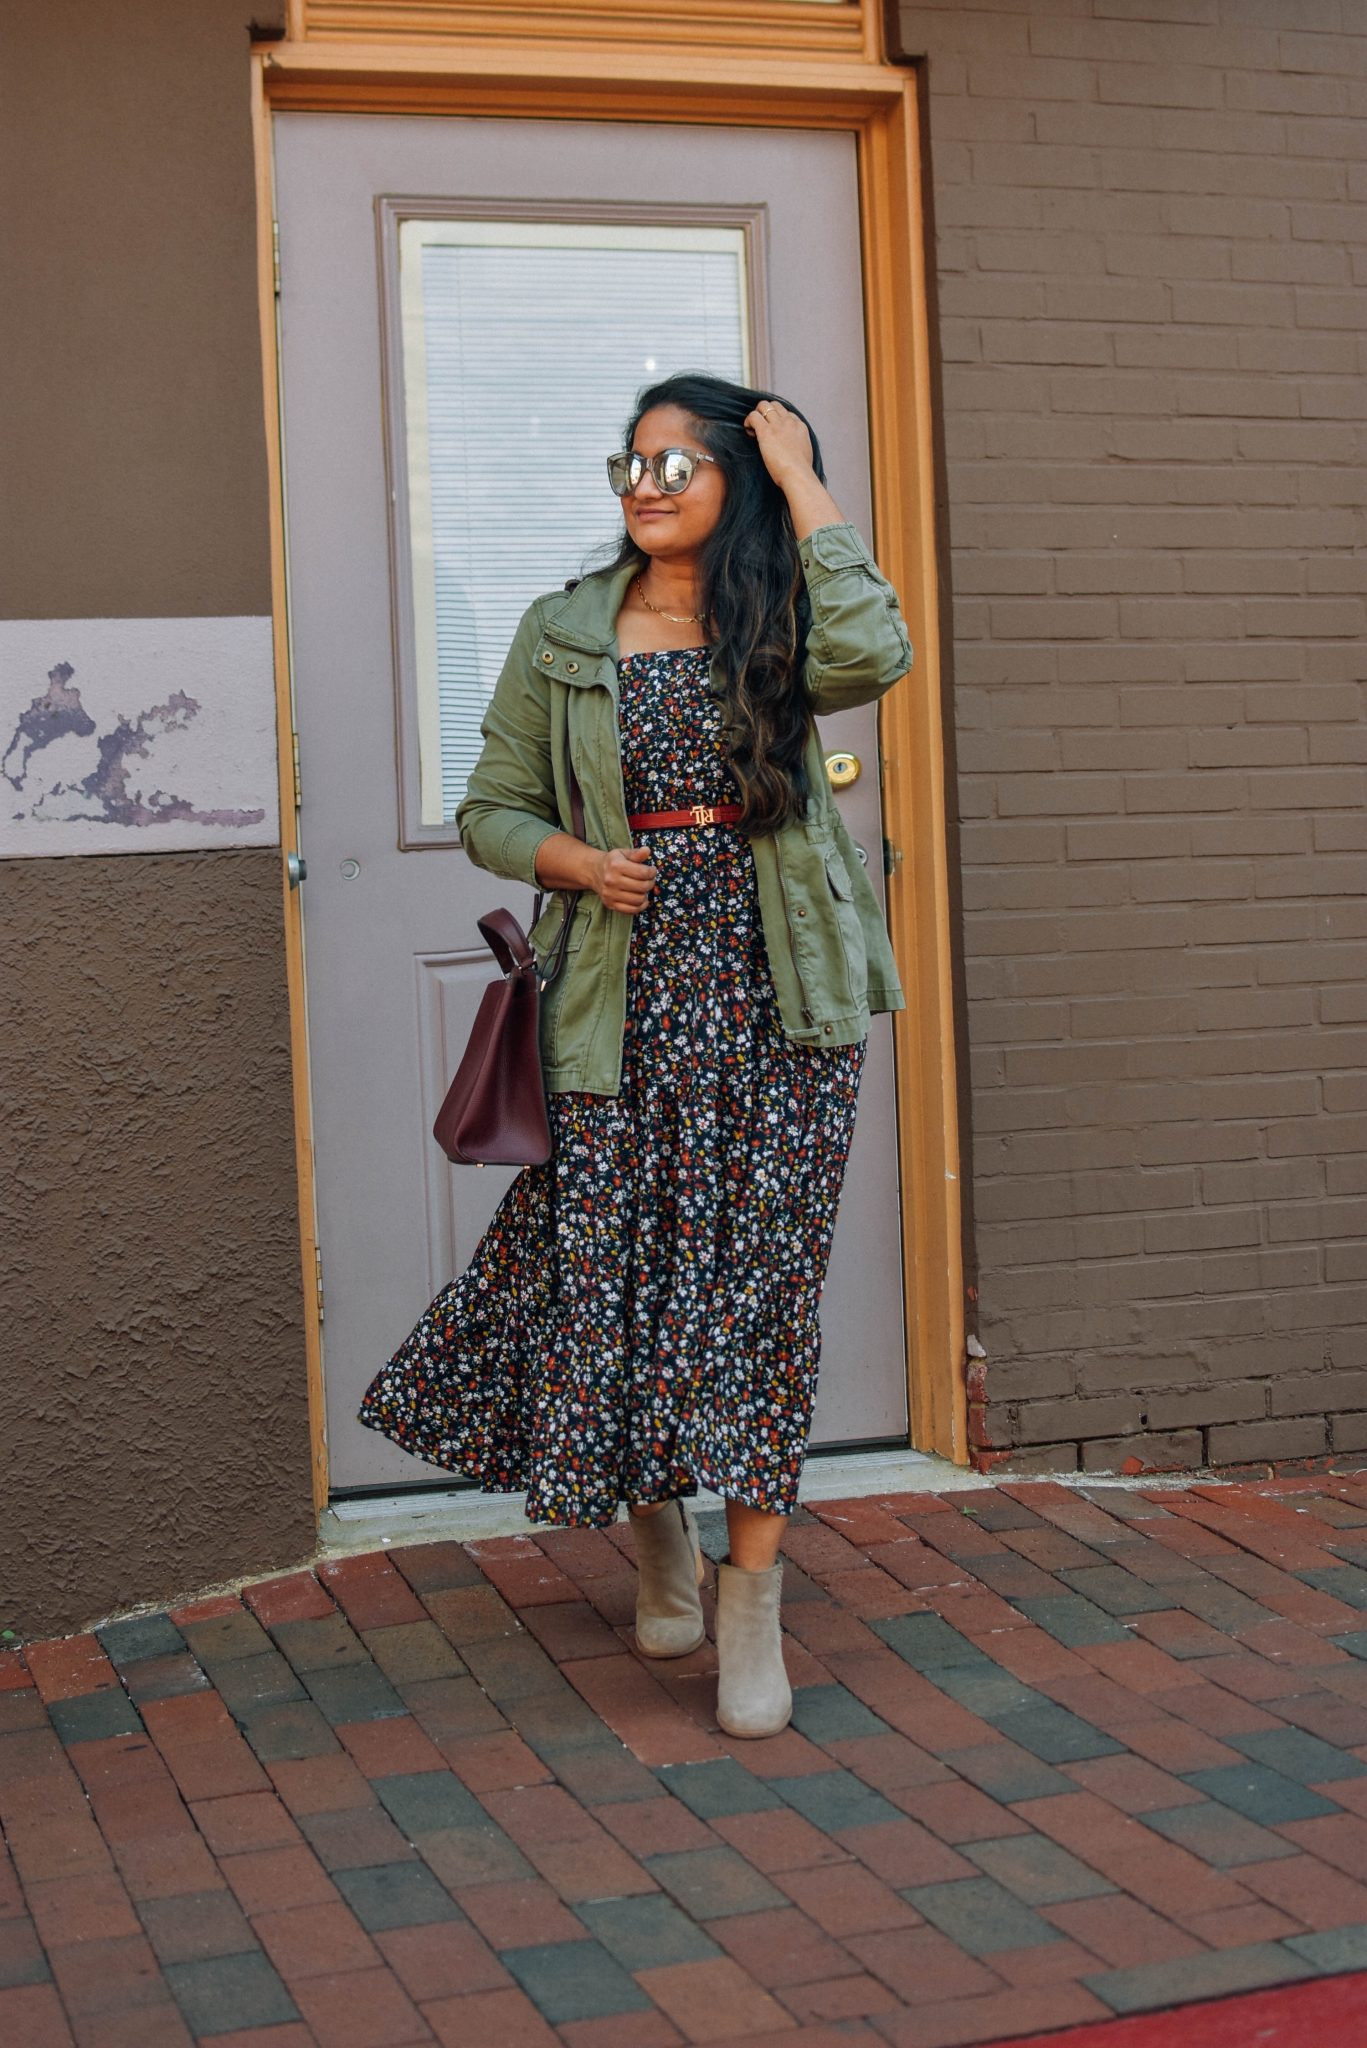 How to style utility jacket over dresses |Utility Jackets by popular Maryland modest fashion blog, Dreaming Loud: image of a woman wearing a Madewell Utility jacket with a floral print dress, brown leather belt, and brown suede ankle boots.